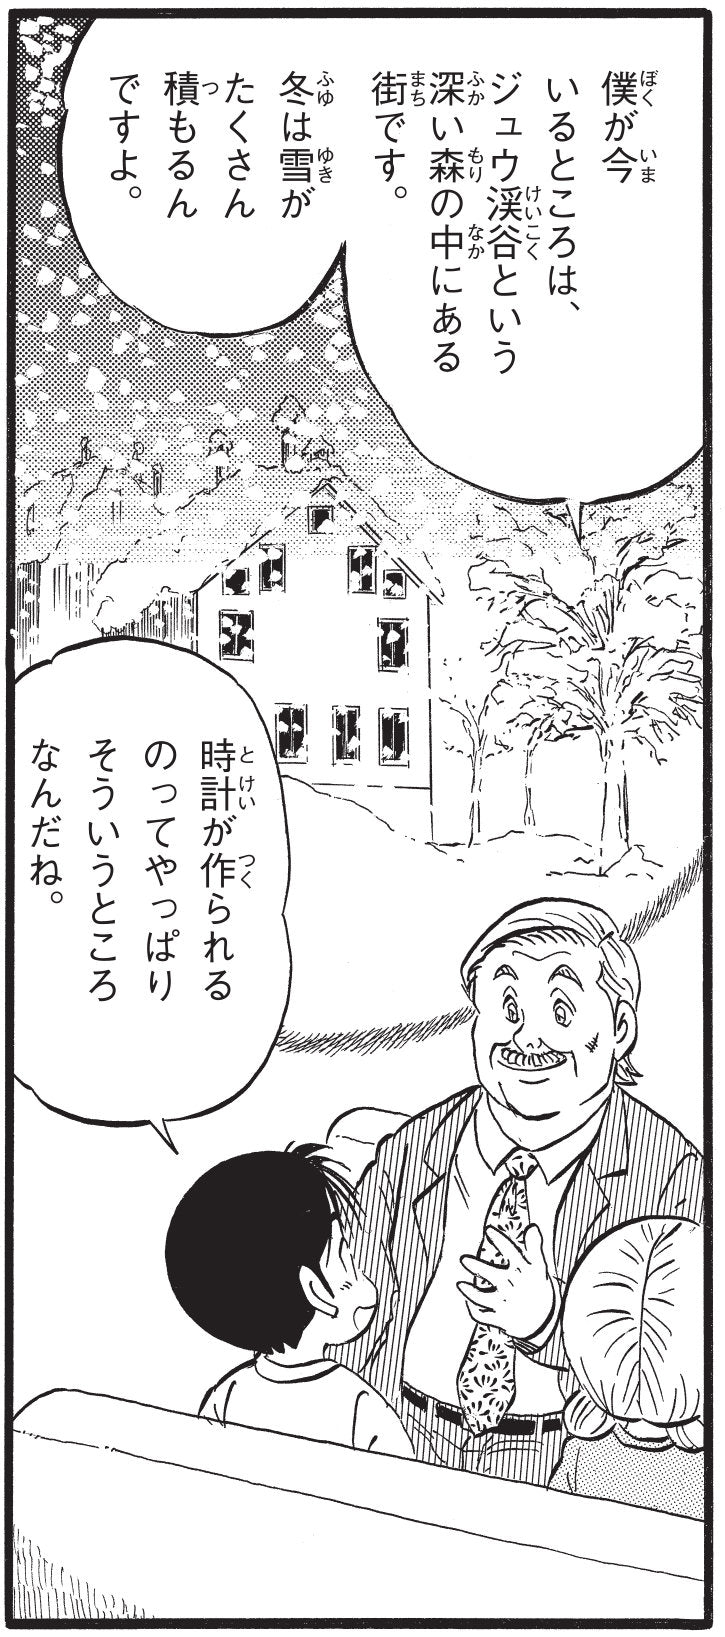 Philippe Dufour Manga cartoon Tokie No Himitsu or the secret of watches for A Collected Man London